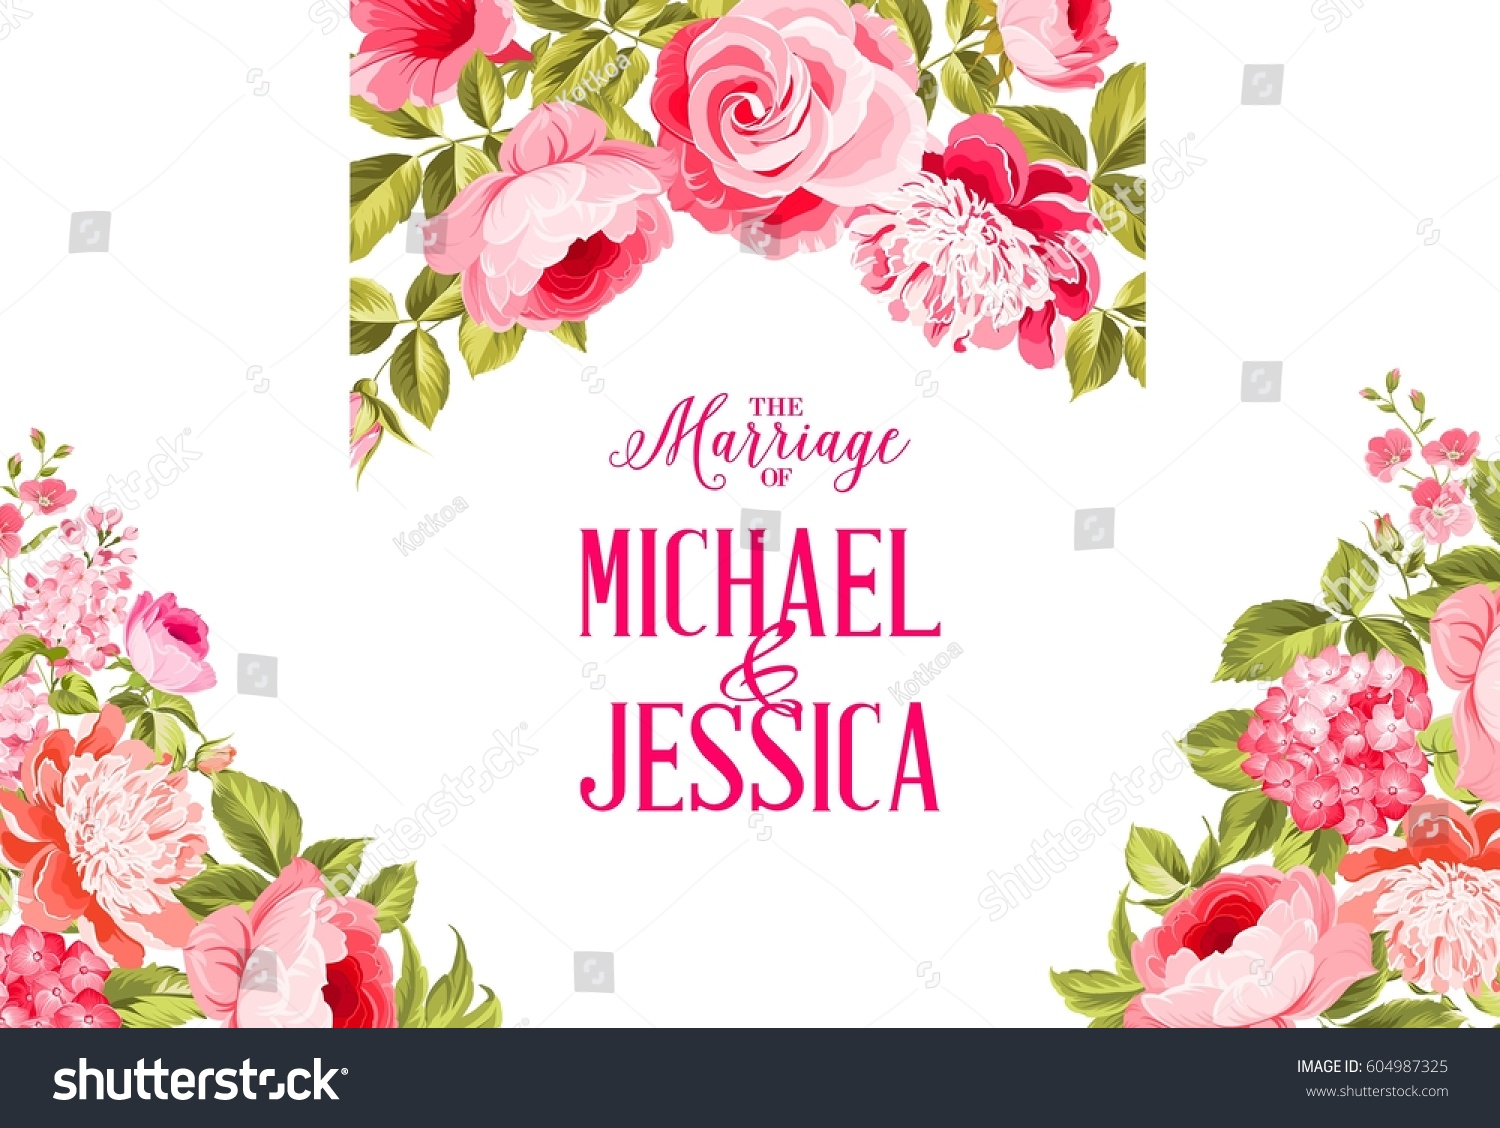 Marriage invitation card invitation card template stock marriage invitation card invitation card template with blooming flowers and custom text isolated over white kristyandbryce Gallery